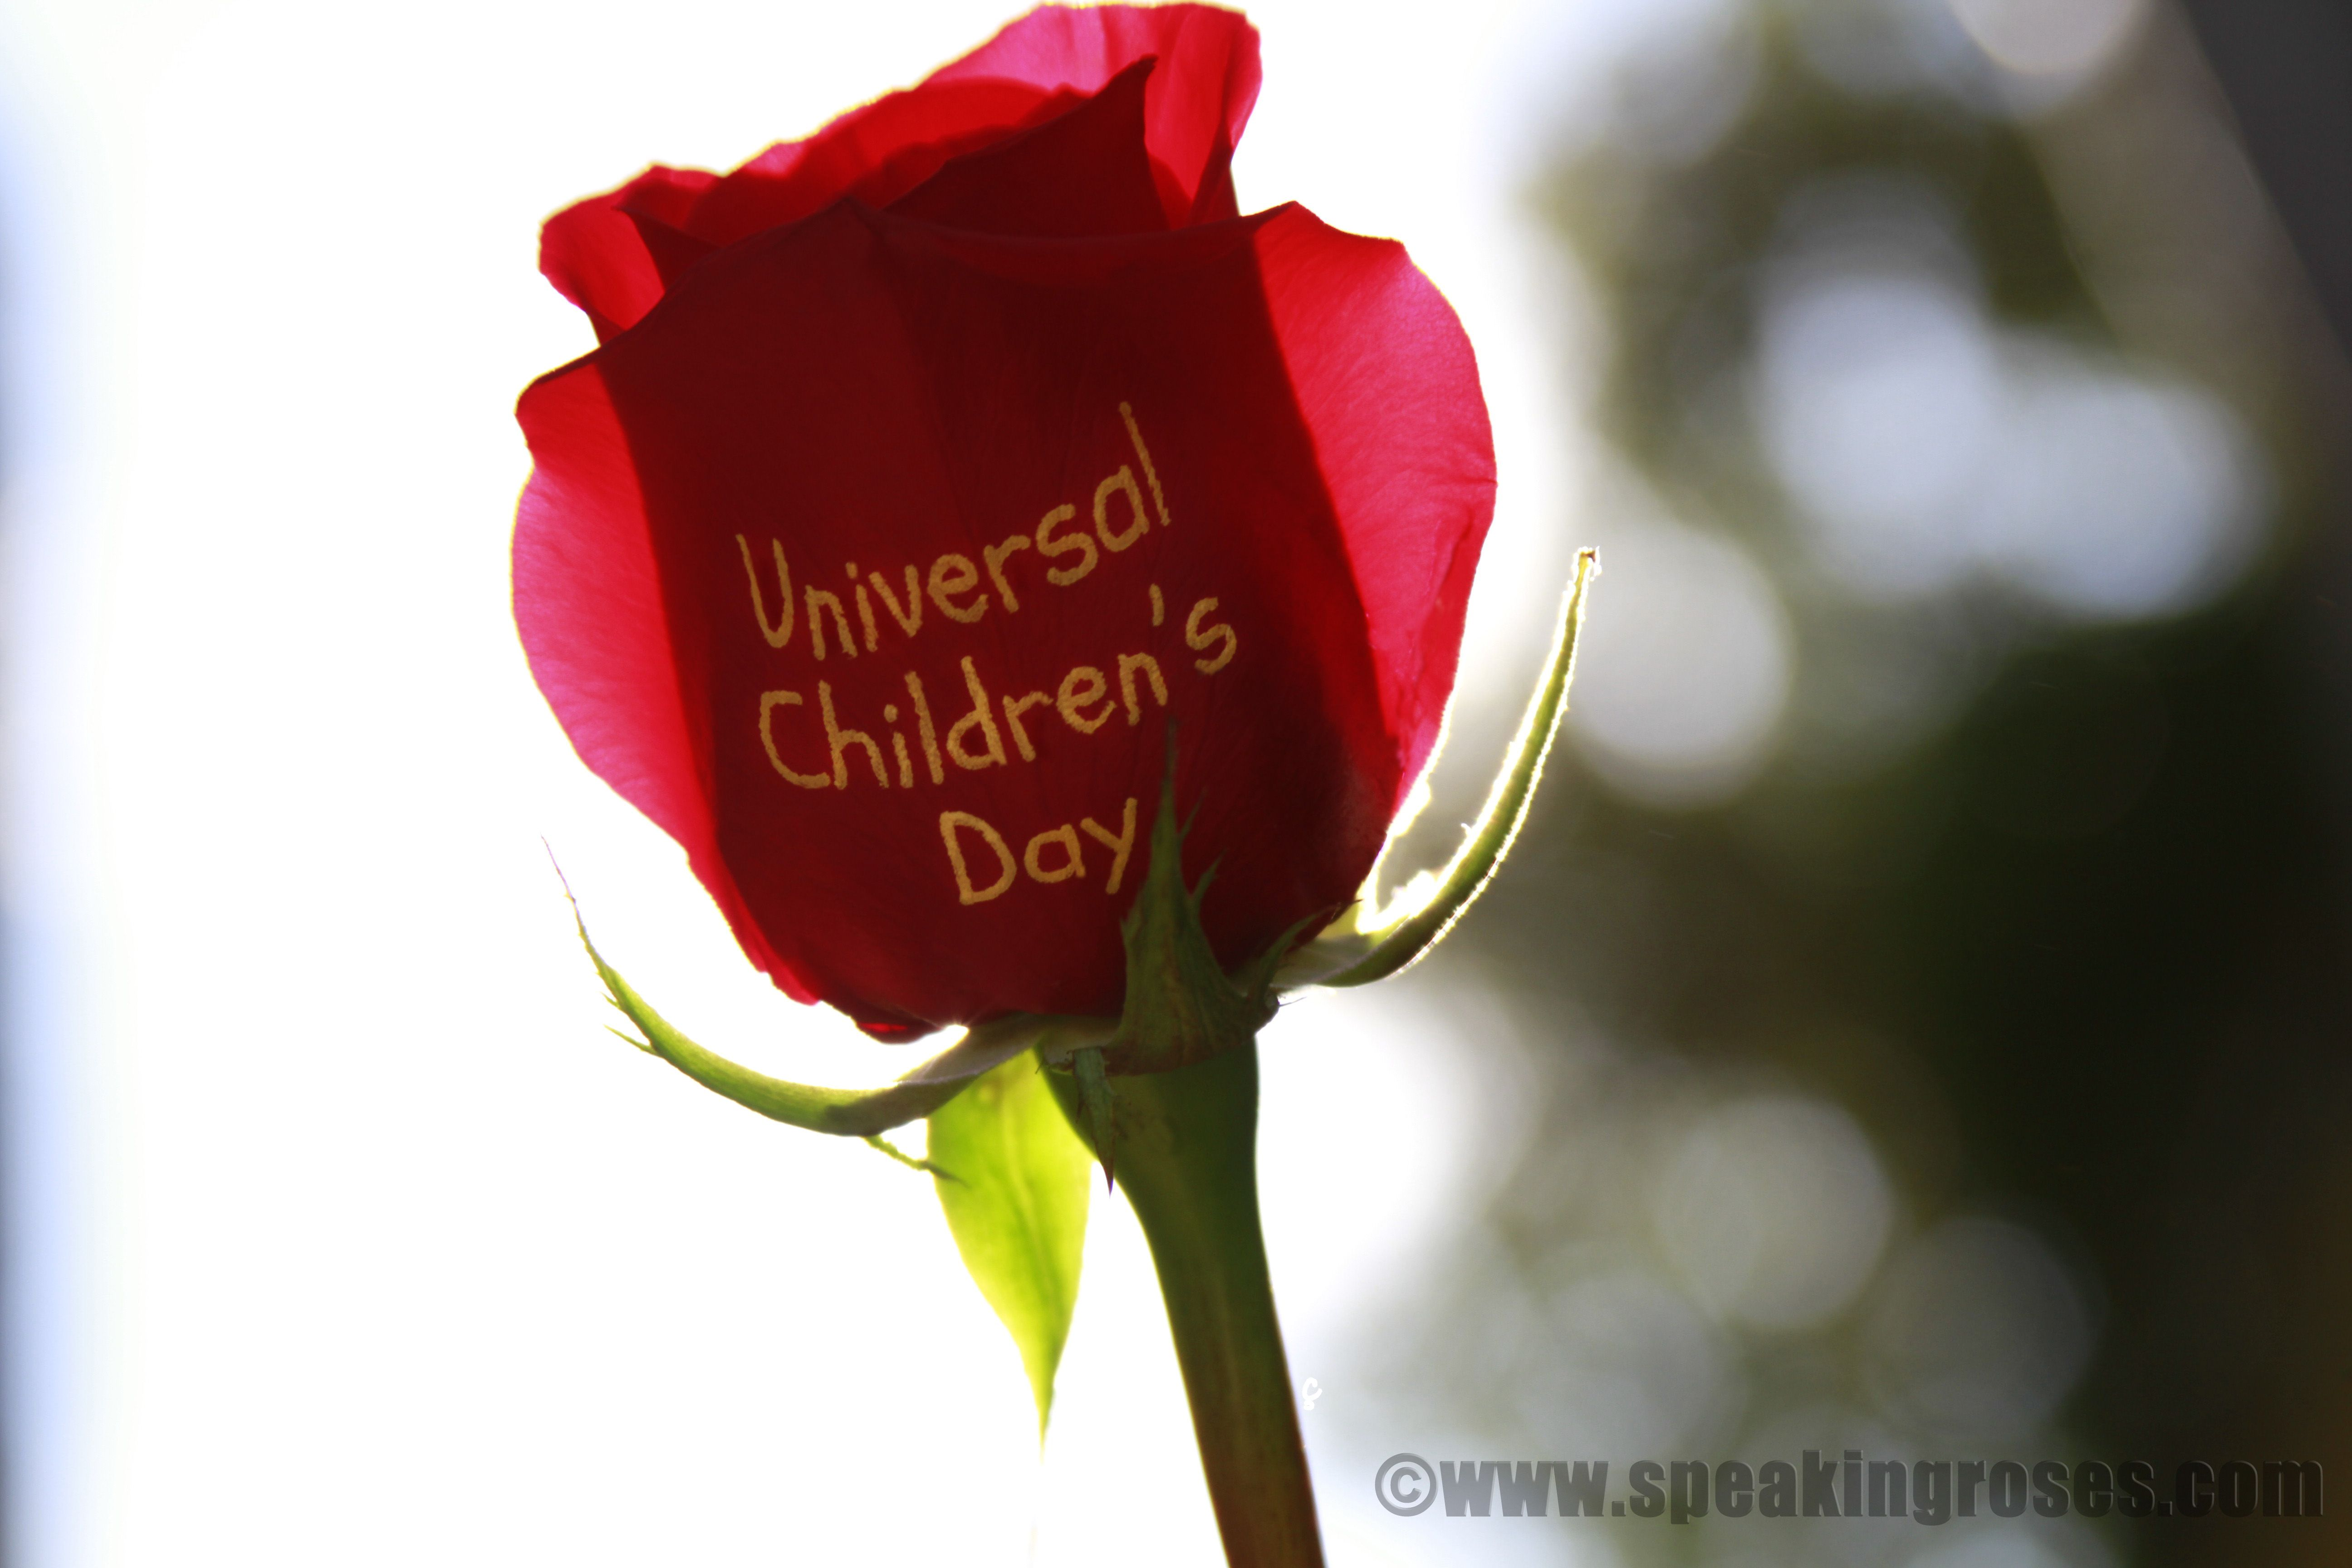 Happy Universal Children's Day! This is one of my favorite quotes ...